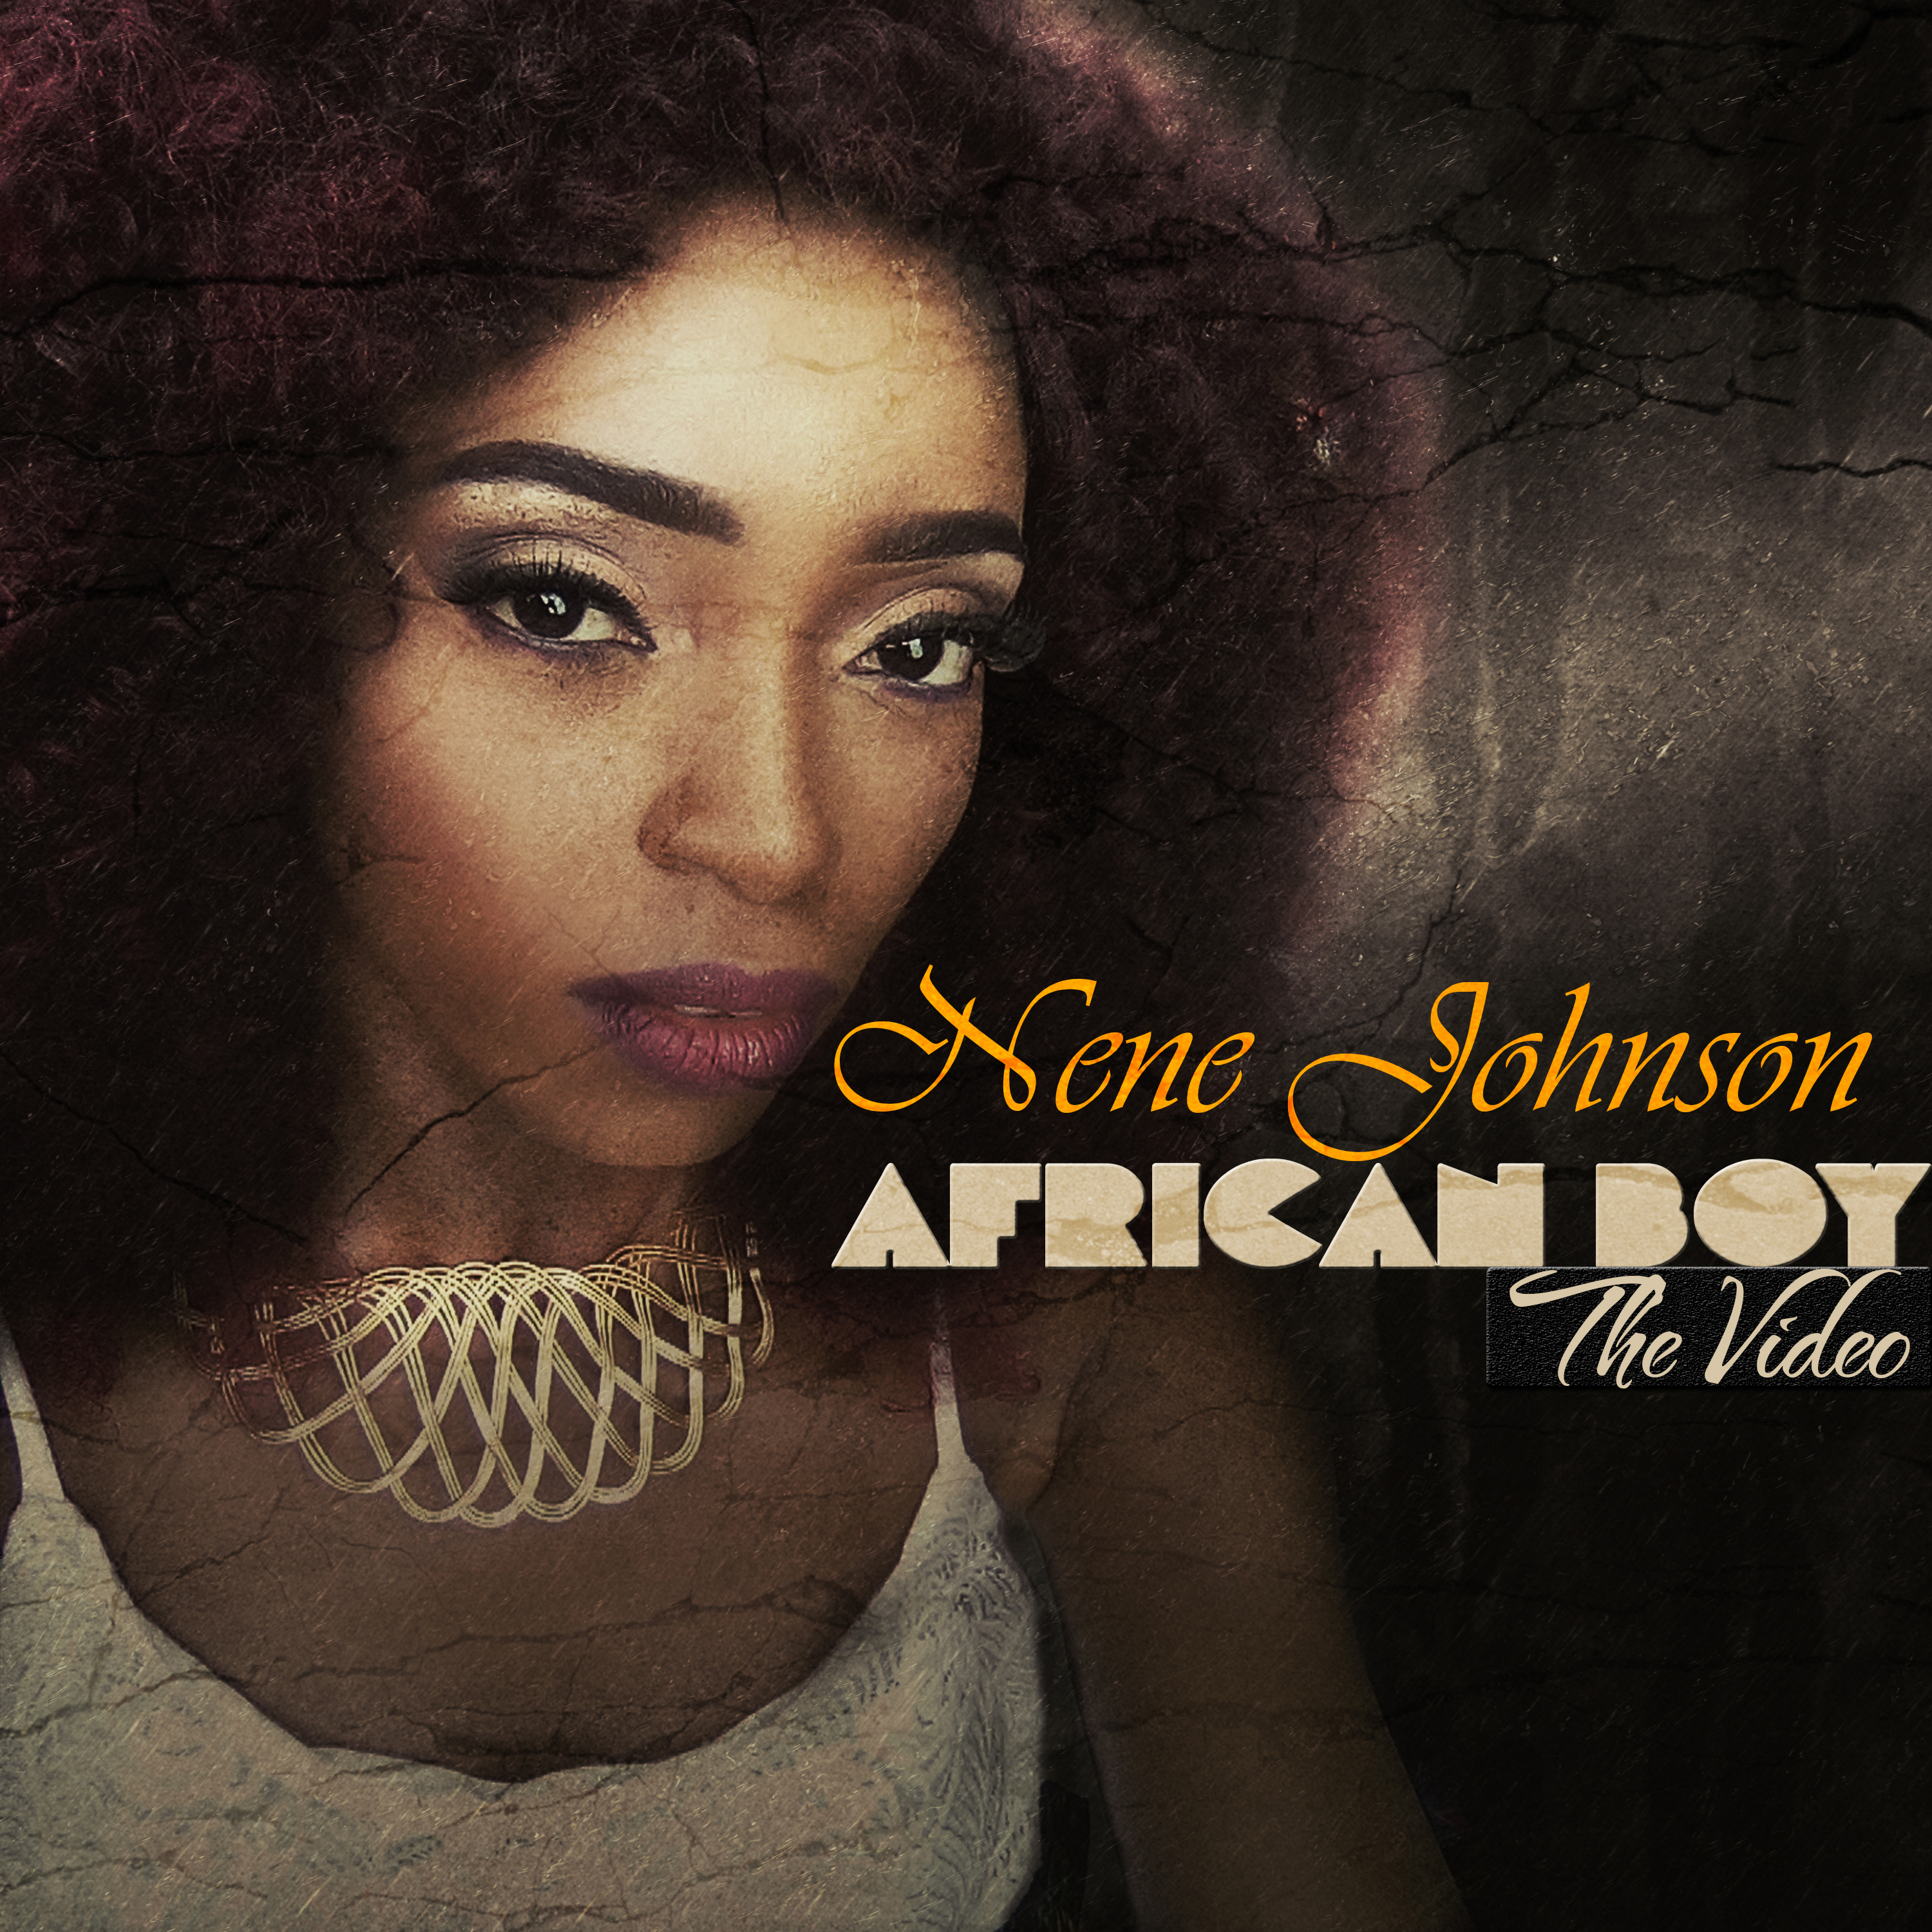 VIDEO: Nene Johsnon – African Boy